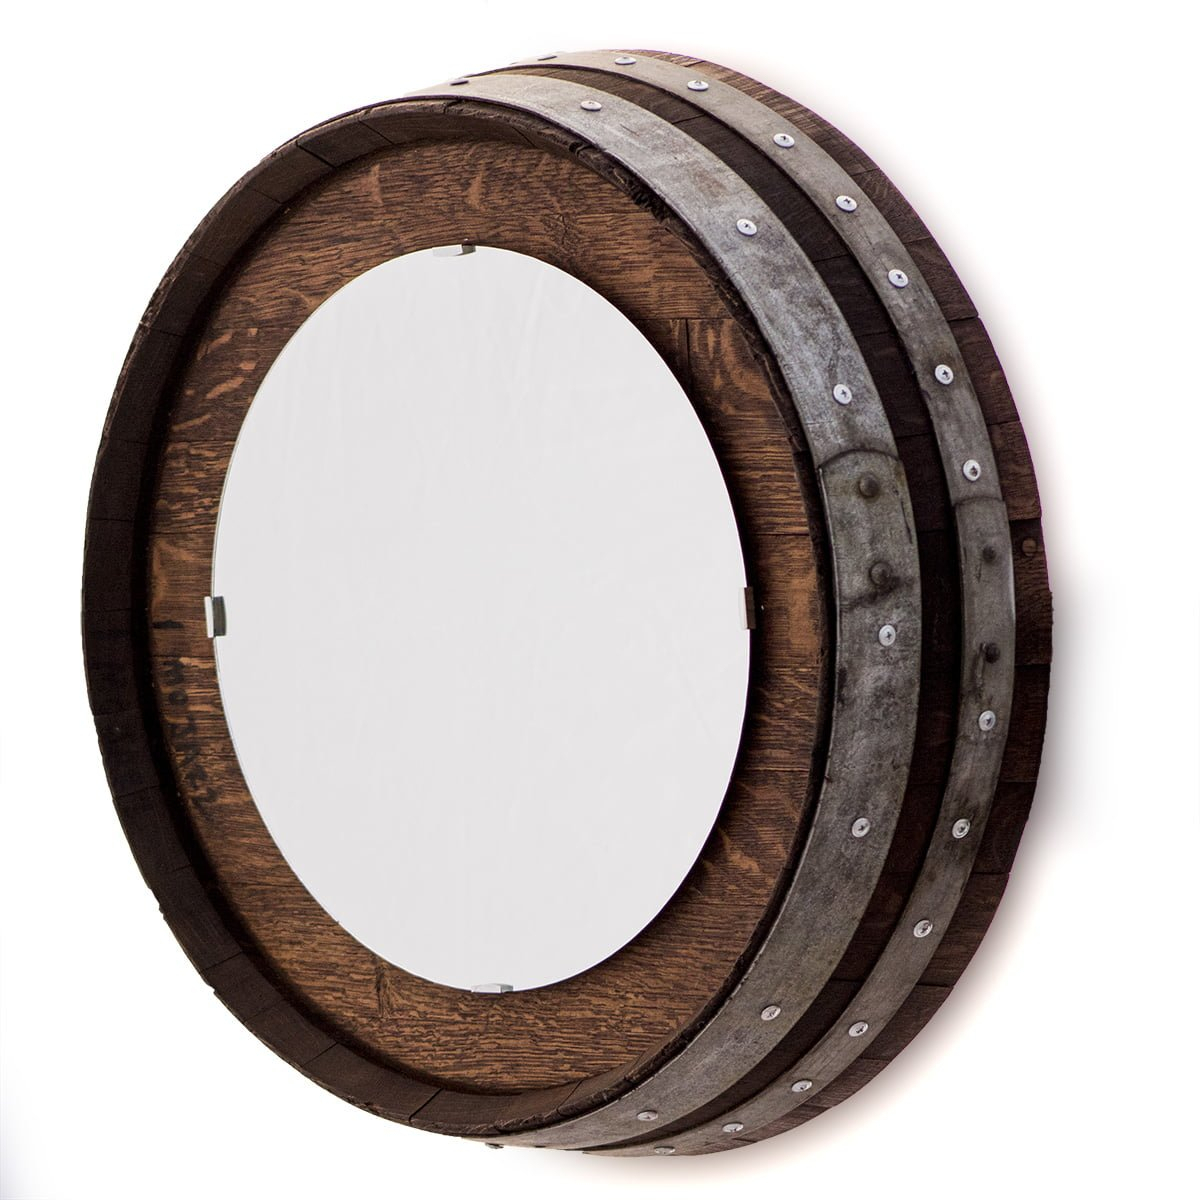 Barrel End Wall Mirror With Staves For Bem Decorative Wall Mirrors (View 12 of 20)